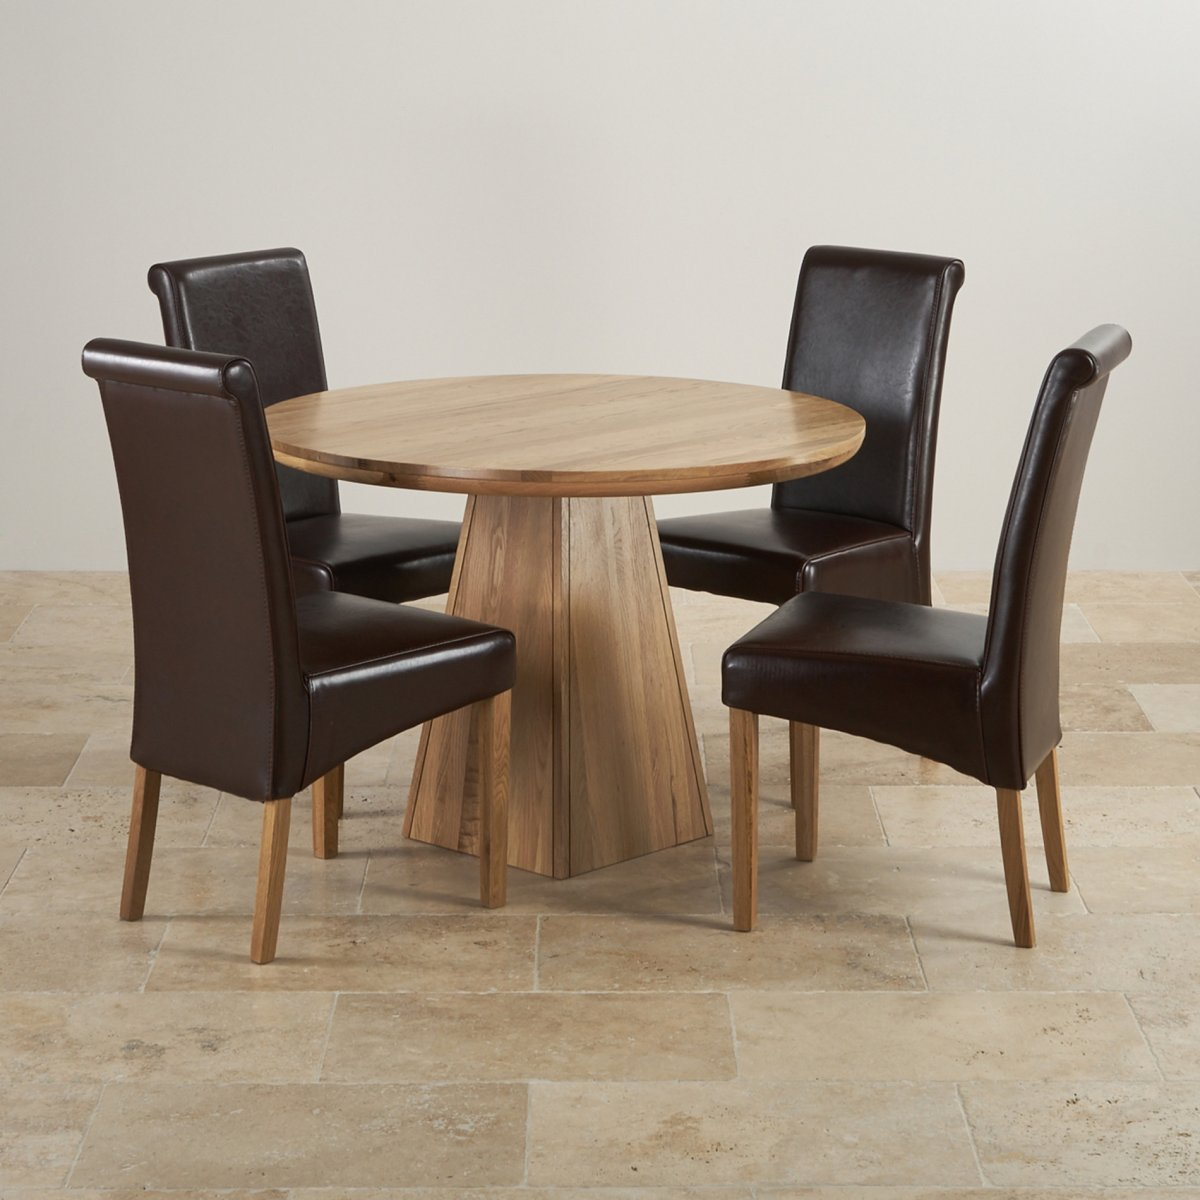 Provence solid oak 3ft 7 dining table with 4 brown chairs for Round dining table for 4